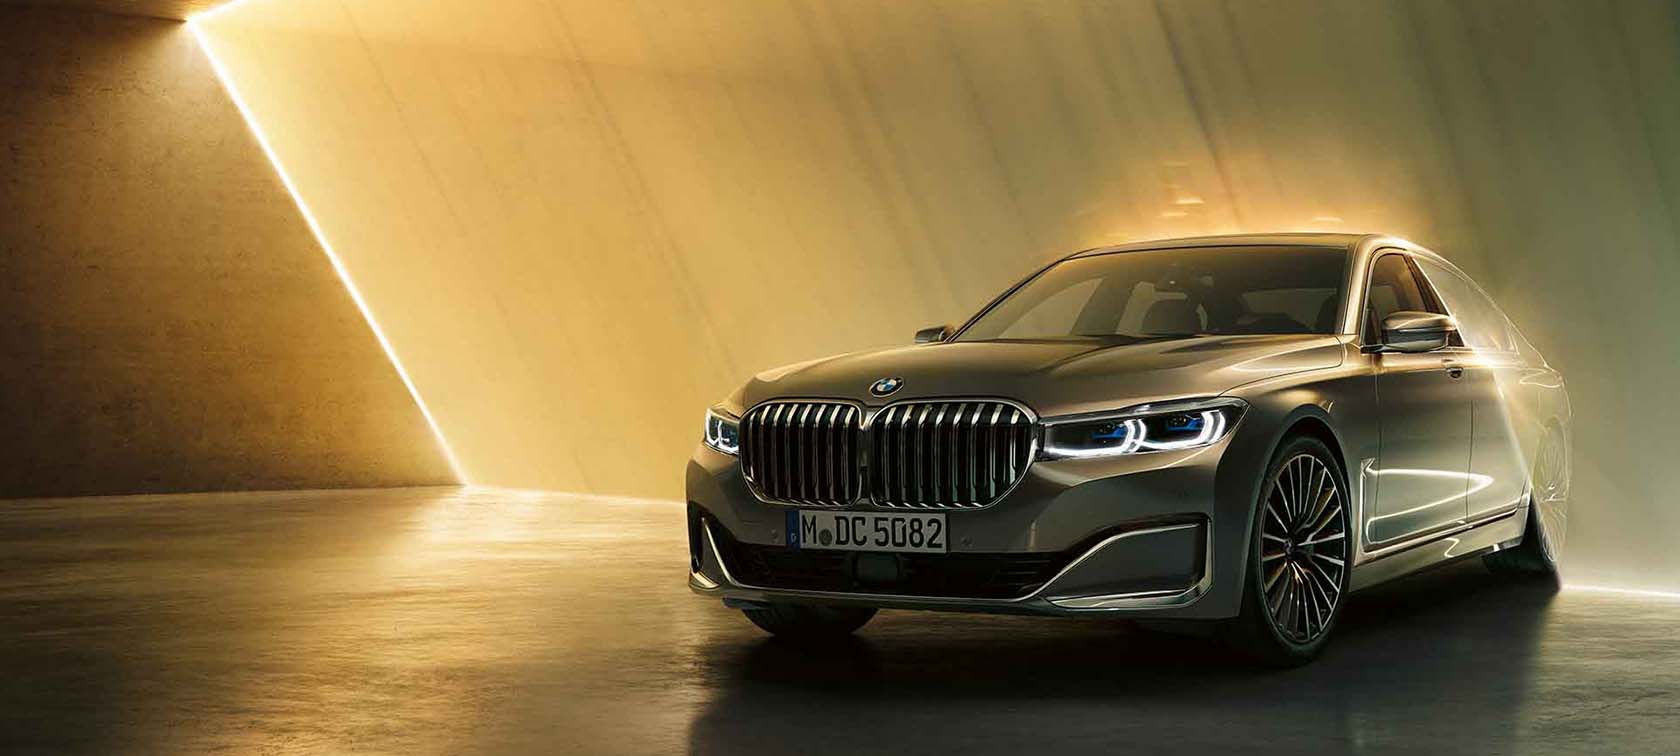 THE BMW 7 SERIES